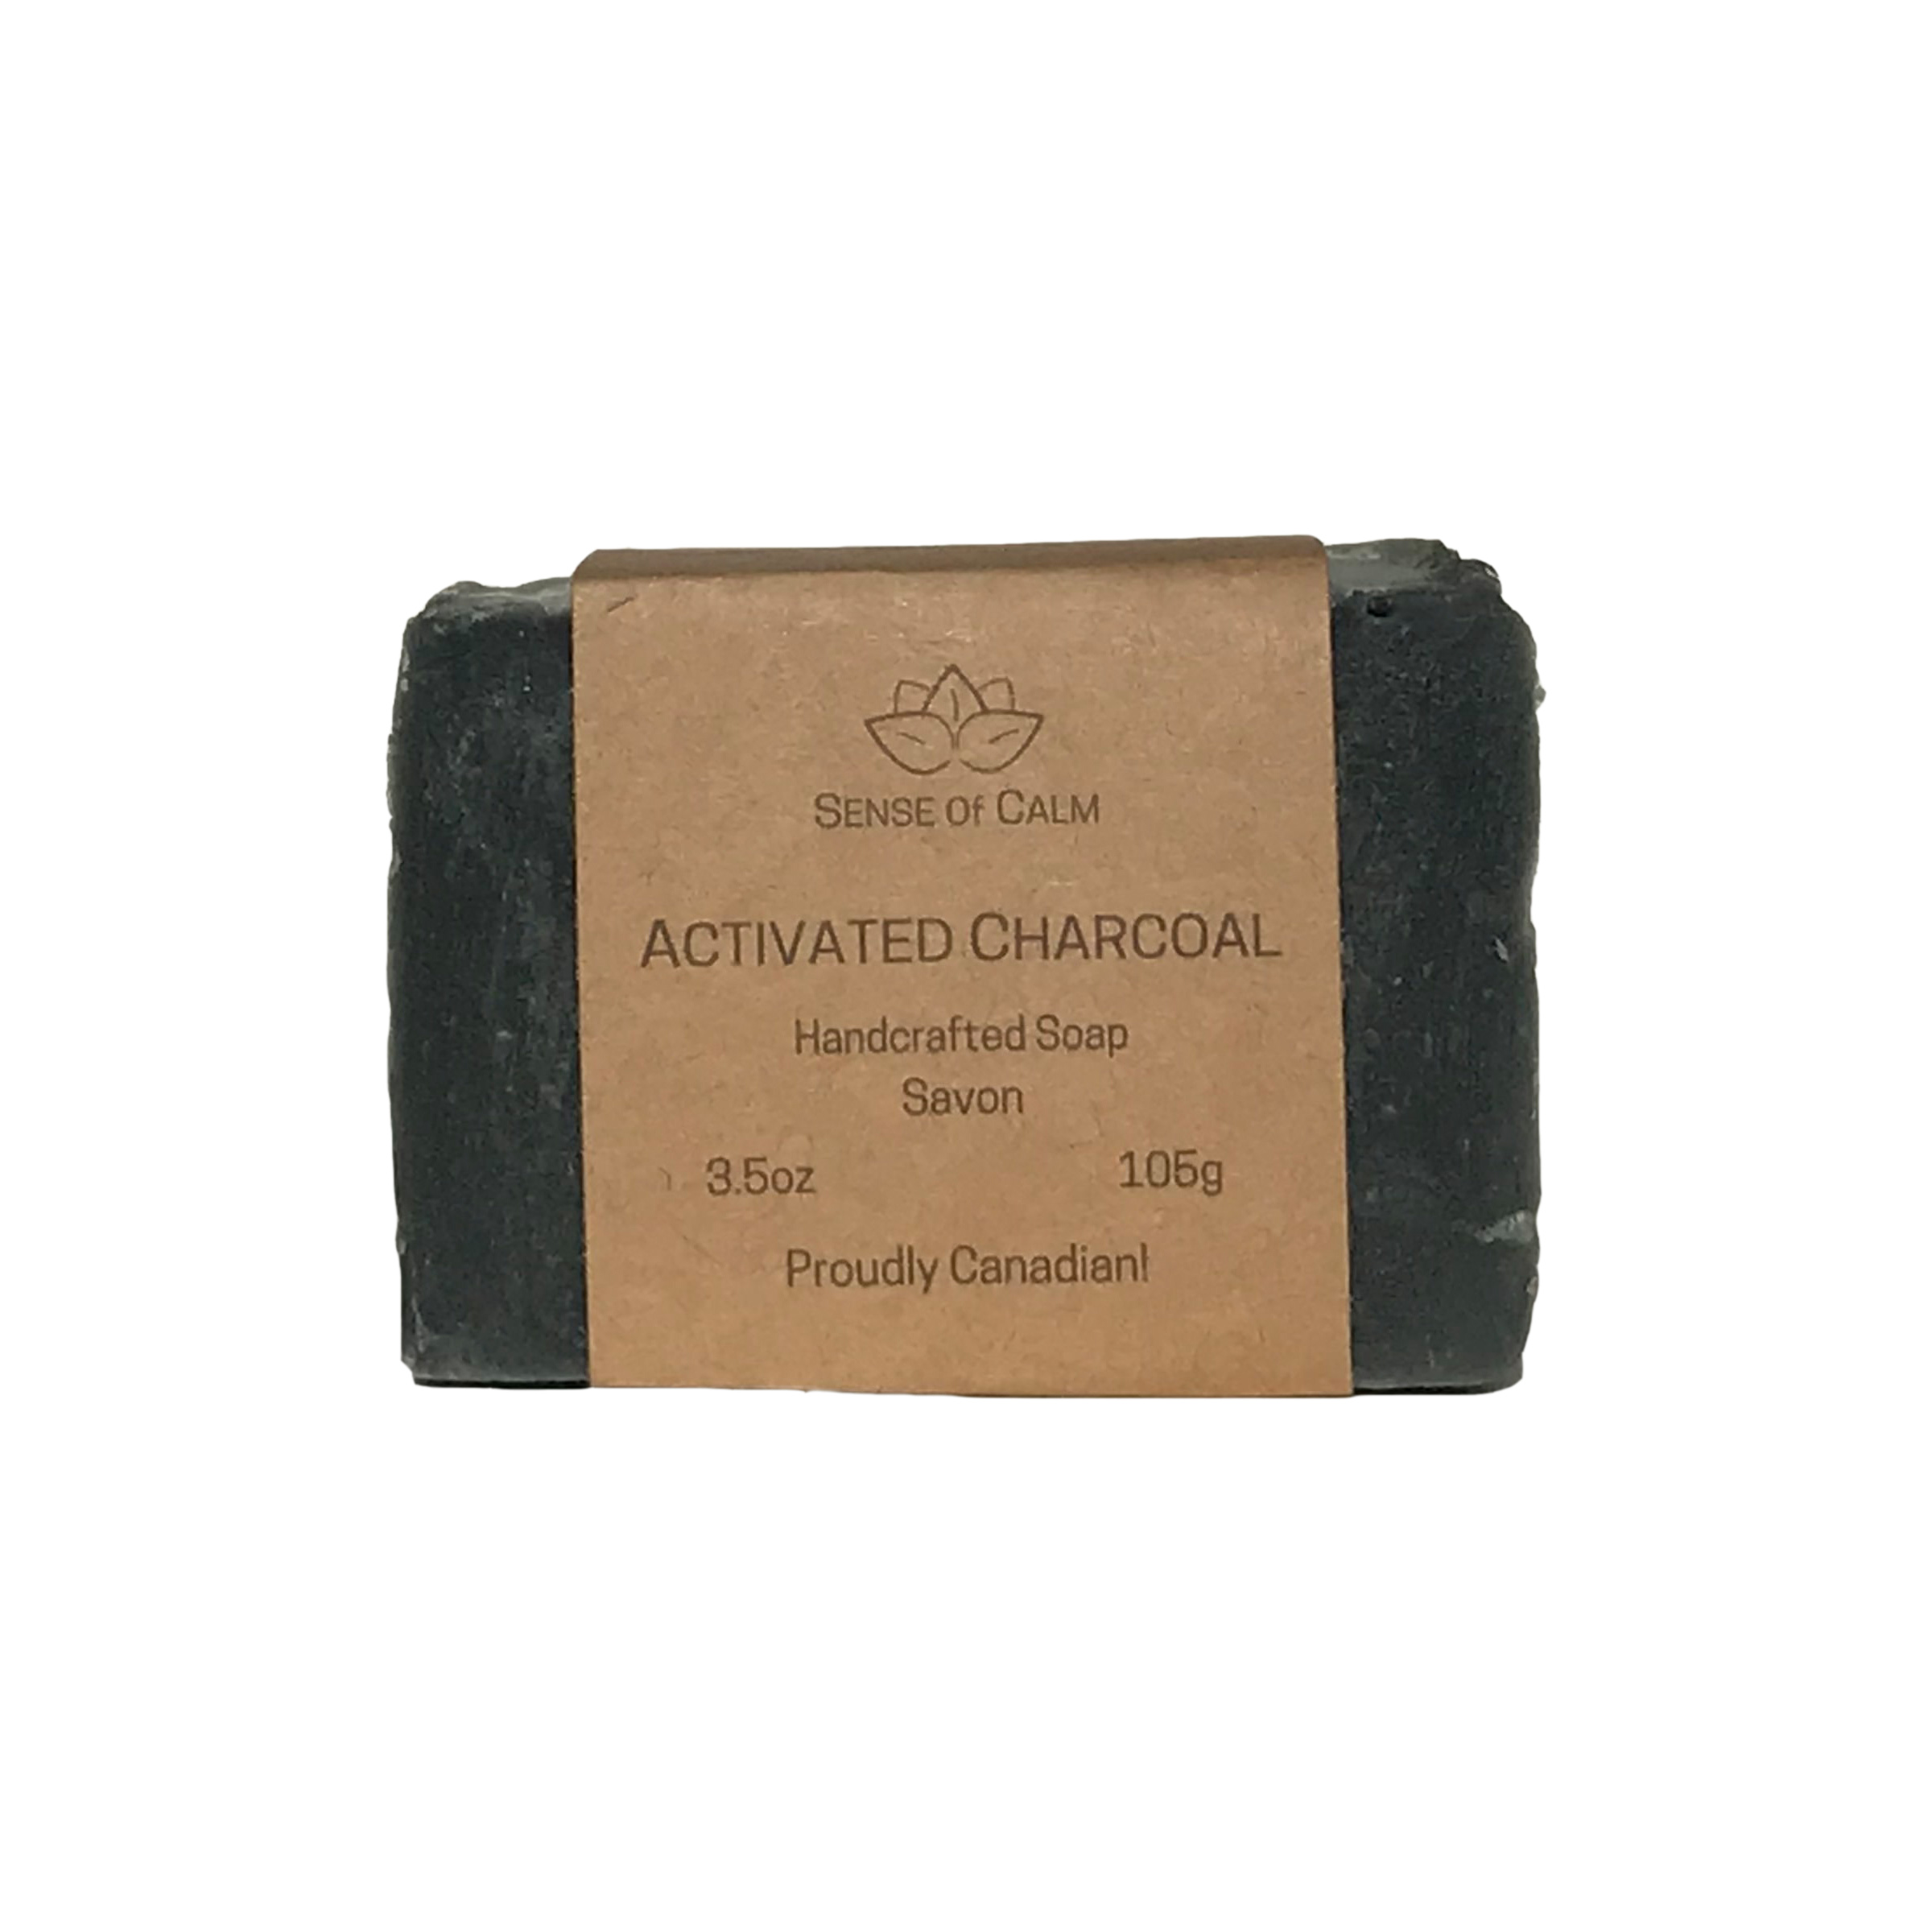 Pure Charcoal Soap Customers First Other Bath & Body Supplies